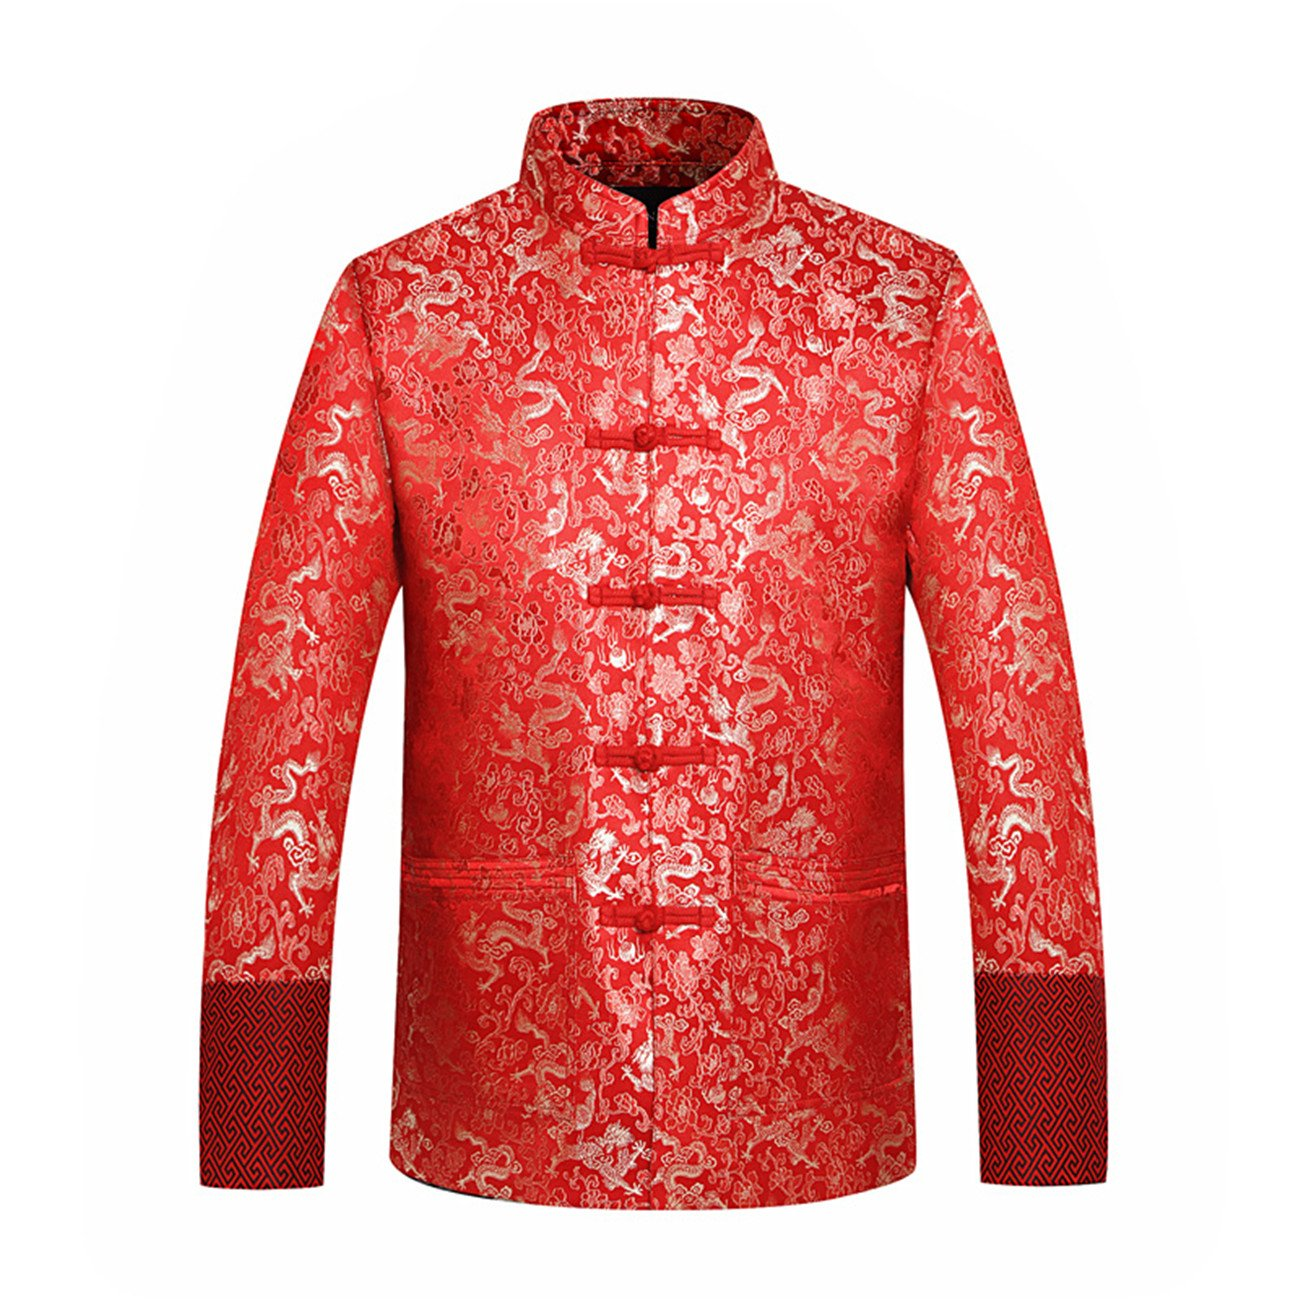 Men's O-neck Long Sleeve Stand Collar Chinese Dragon Silk Disk Buckle Embroidery TangJackets(XL,red)